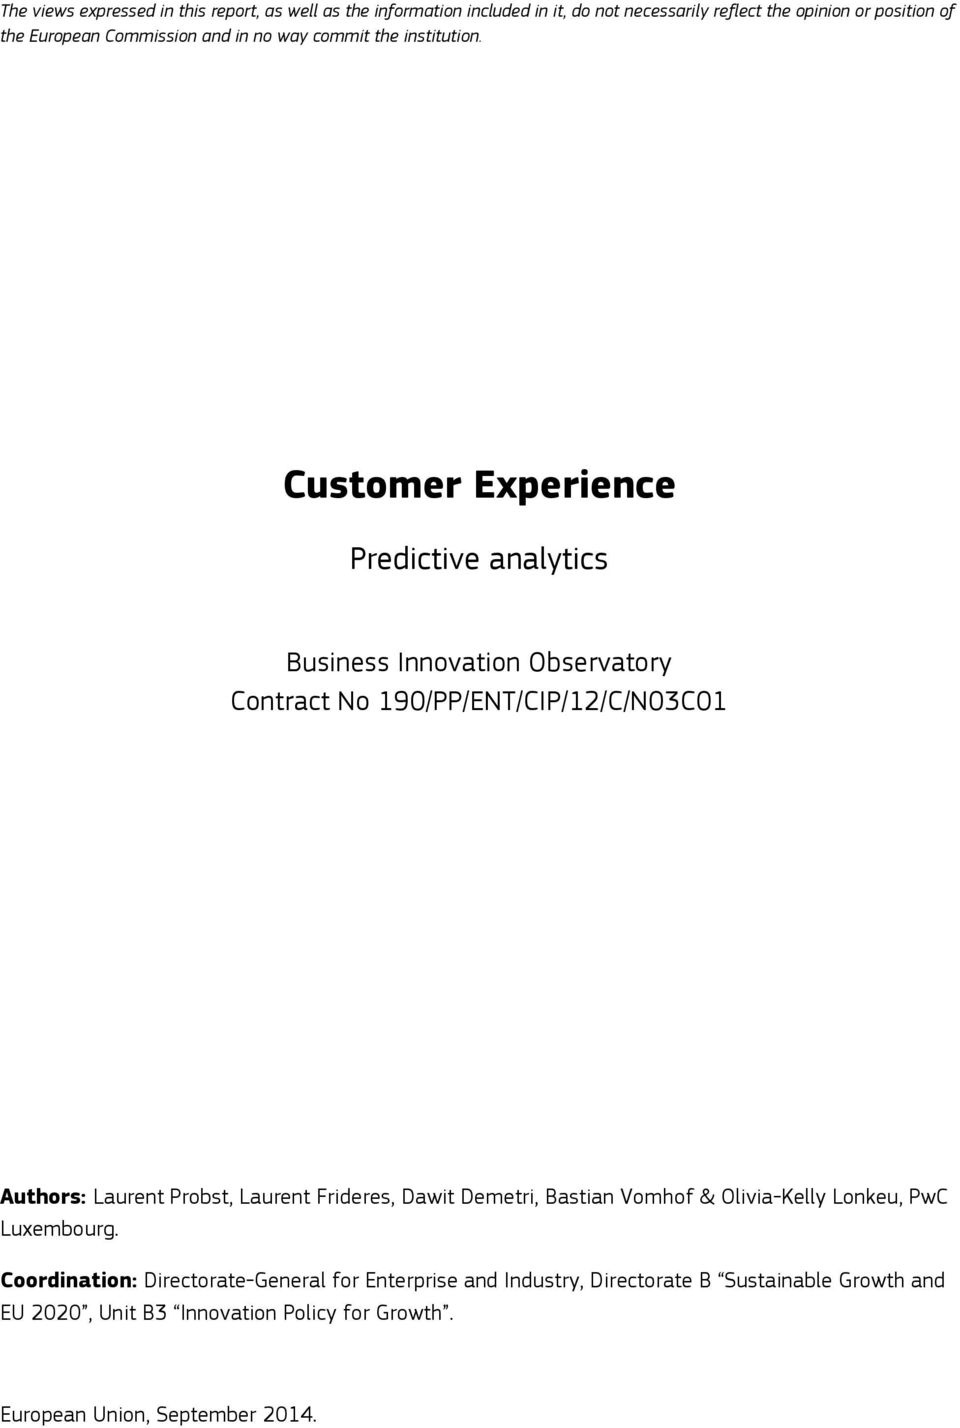 Customer Experience Predictive analytics Business Innovation Observatory Contract No 190/PP/ENT/CIP/12/C/N03C01 Authors: Laurent Probst, Laurent